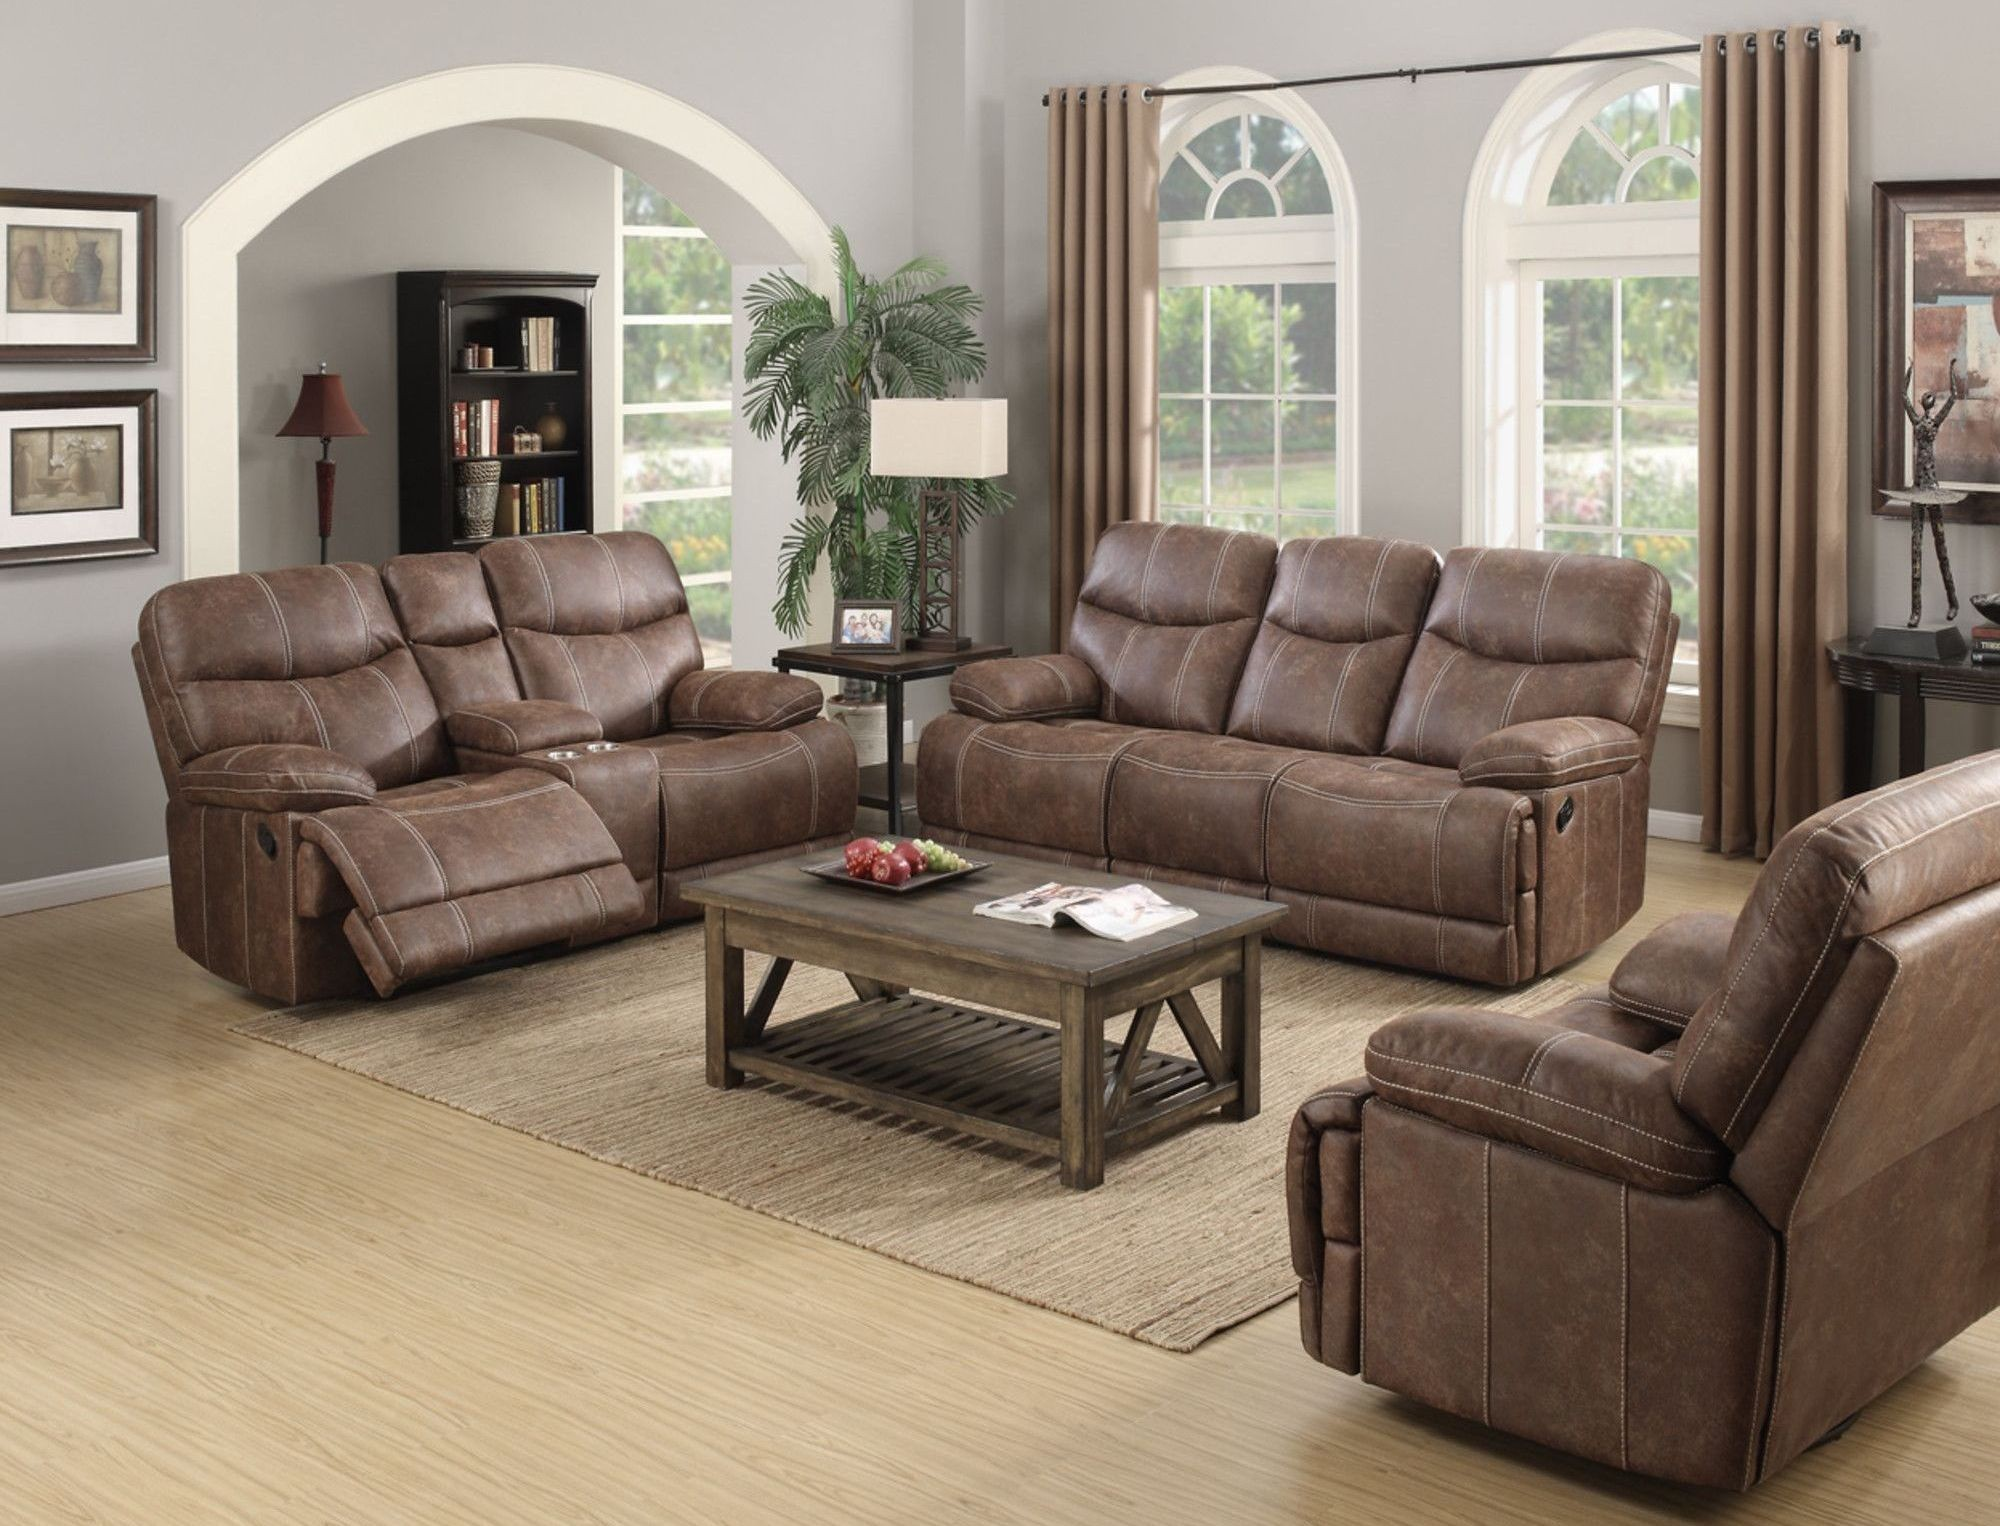 Earl sanded microfiber brown reclining living room set - Microfiber living room furniture sets ...